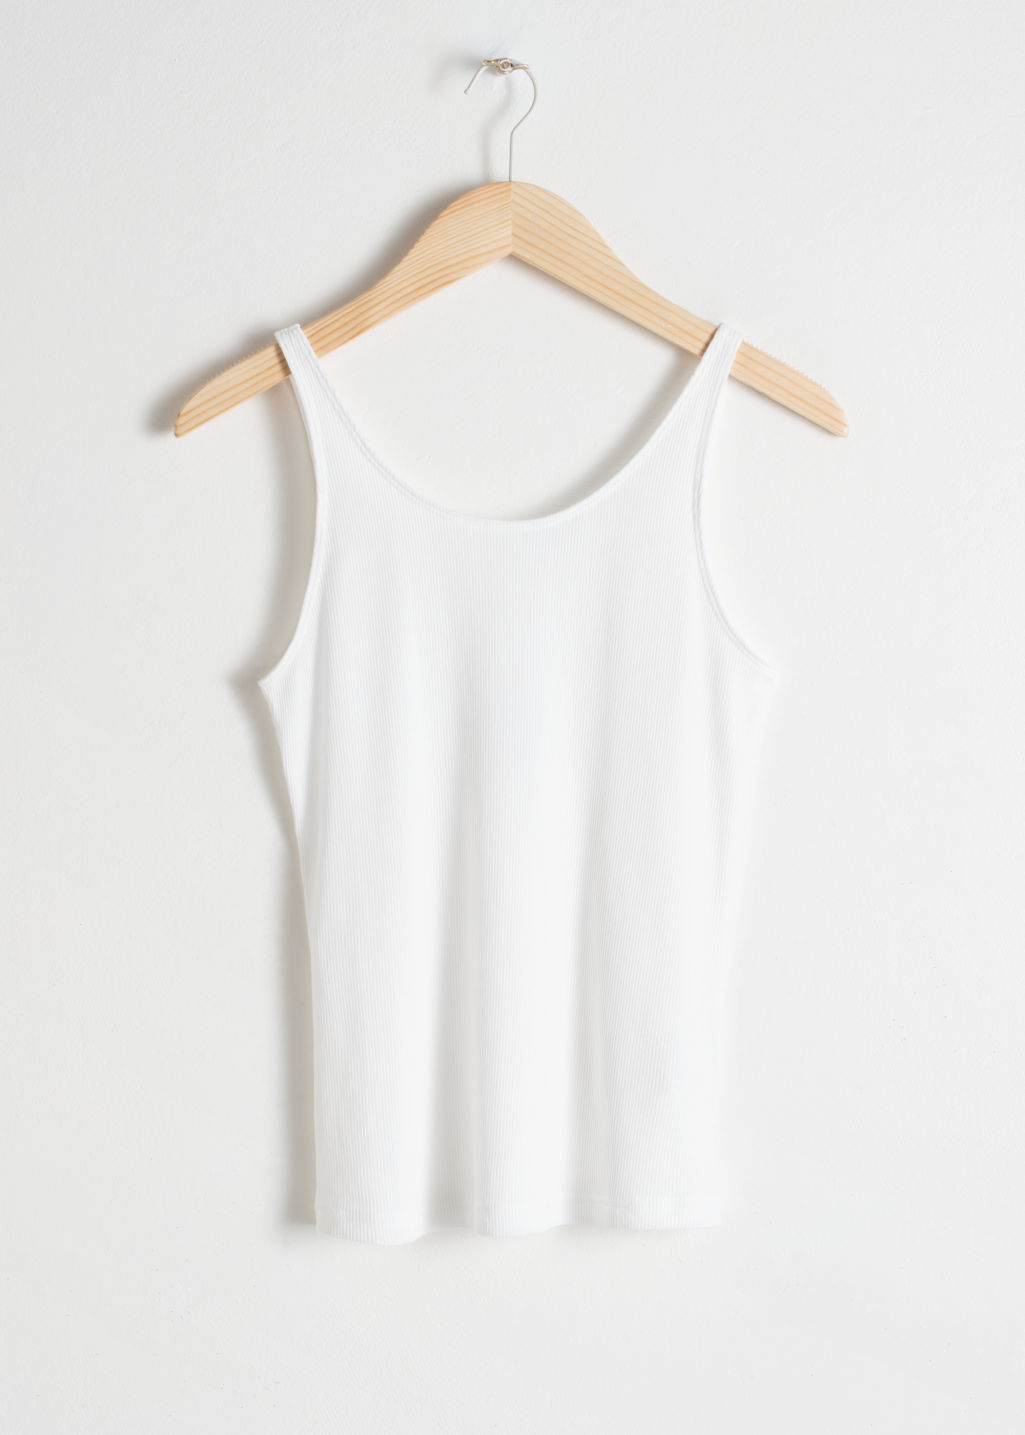 0be6d221f7be26 Fitted Scoop Back Tank Top - White - Tanktops   Camisoles -   Other ...